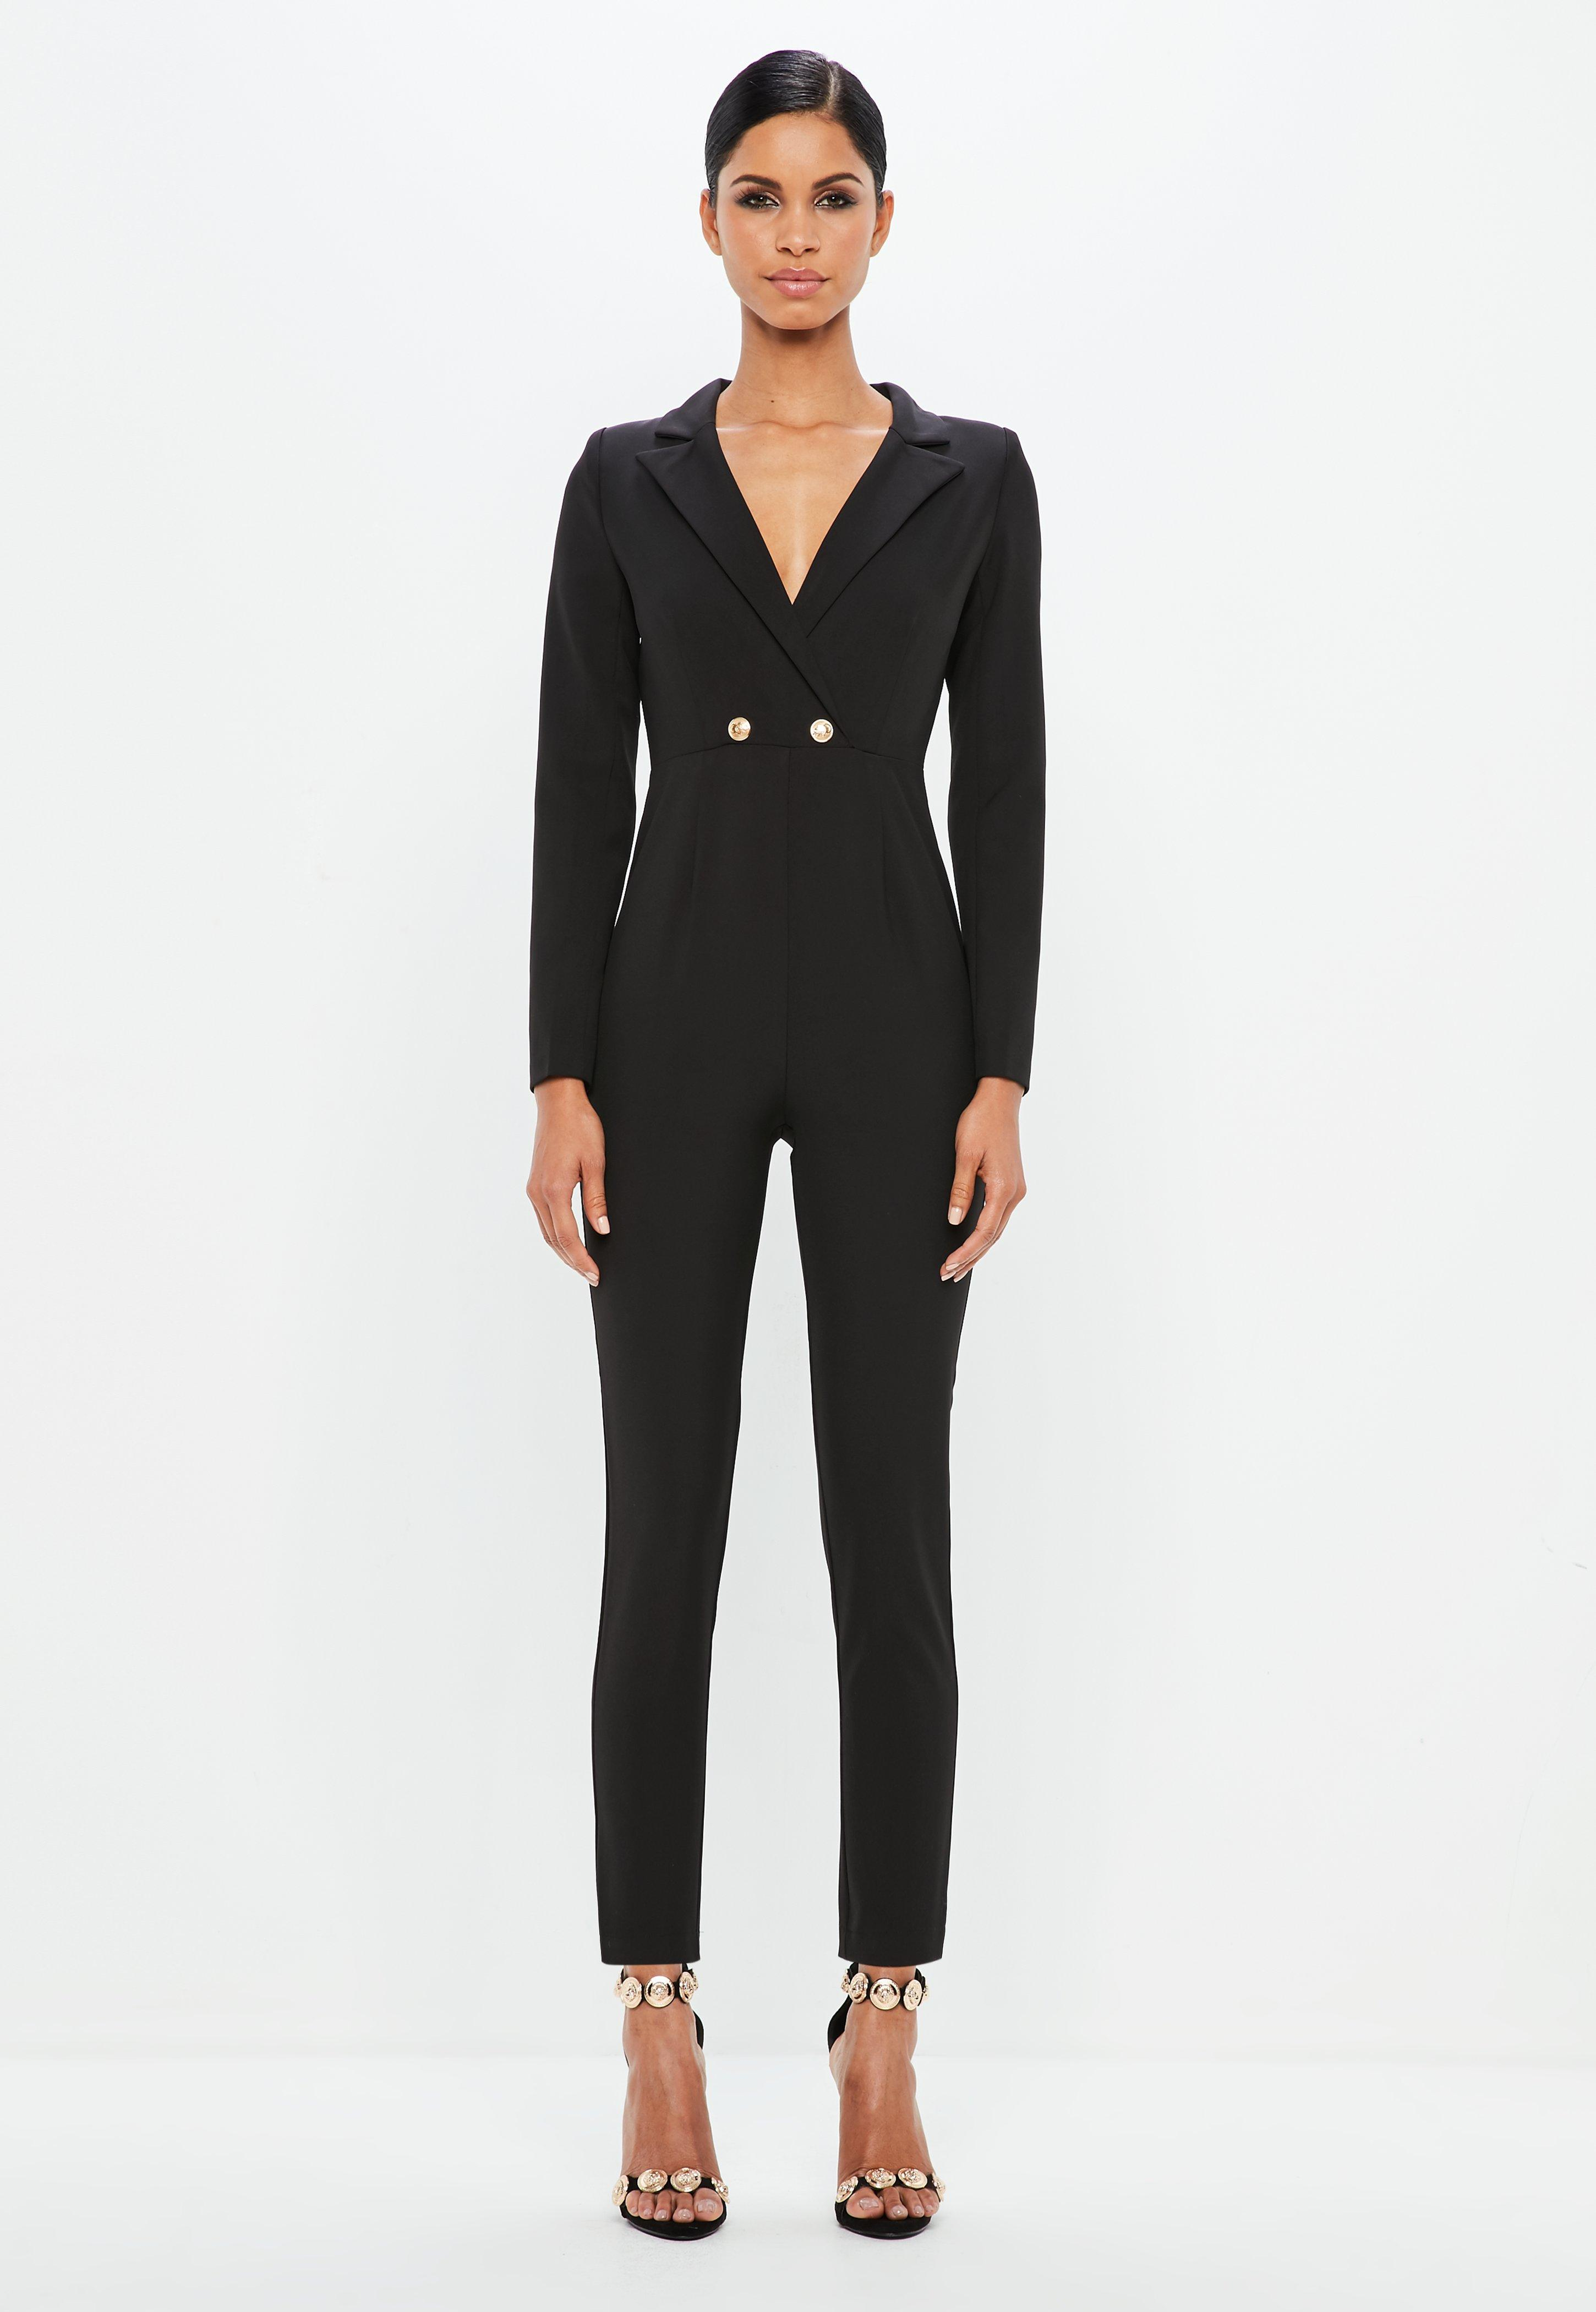 Explore For Sale Eastbay Sale Online Missguided Long Sleeve Double Button Jumpsuit Wl1OGVo